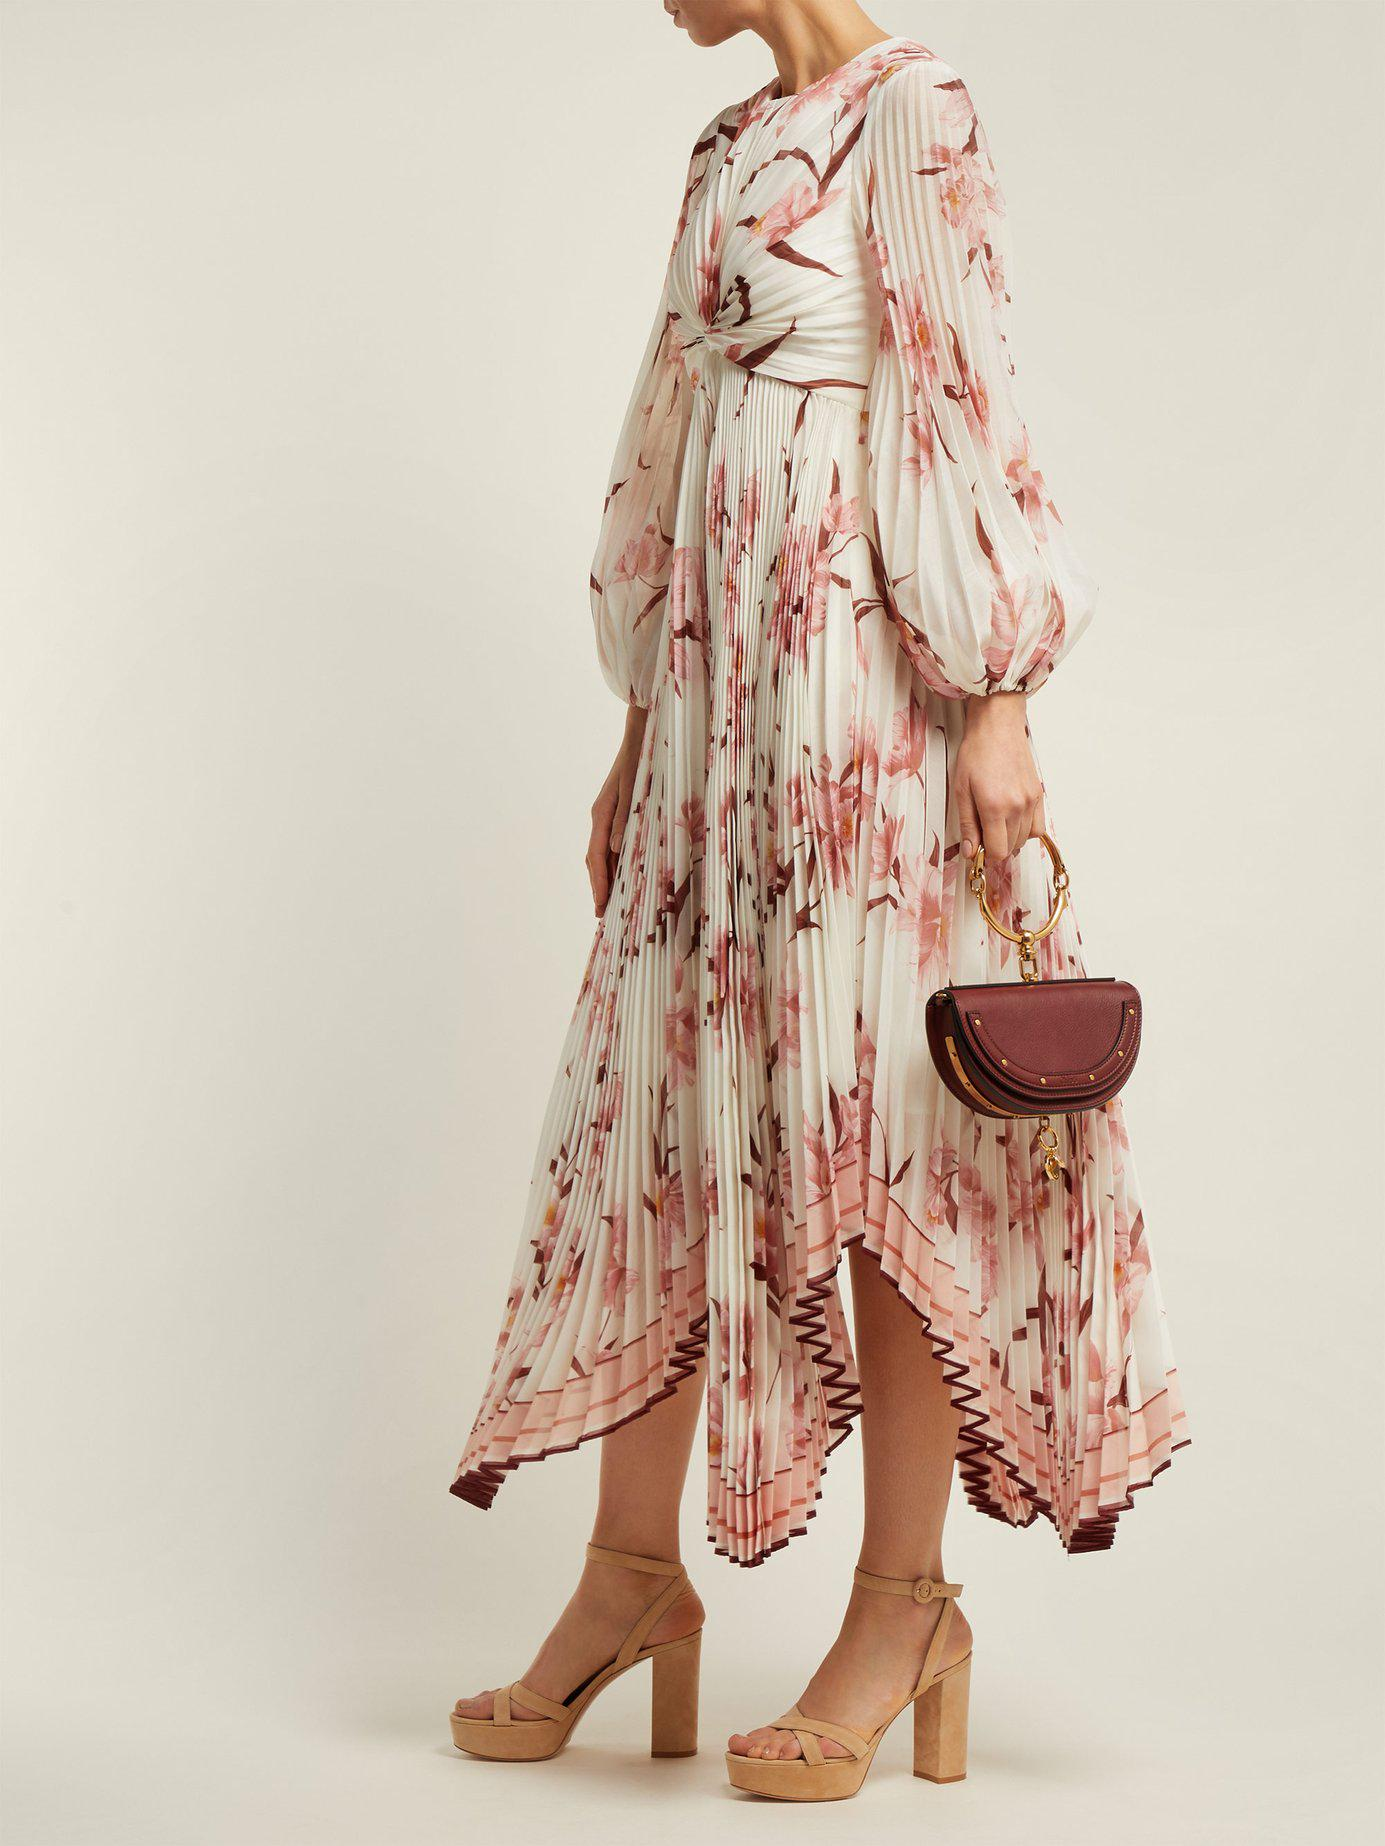 54d4002e34 Lyst - Zimmermann Corsage Orchid Print Pleated Midi Dress in Pink